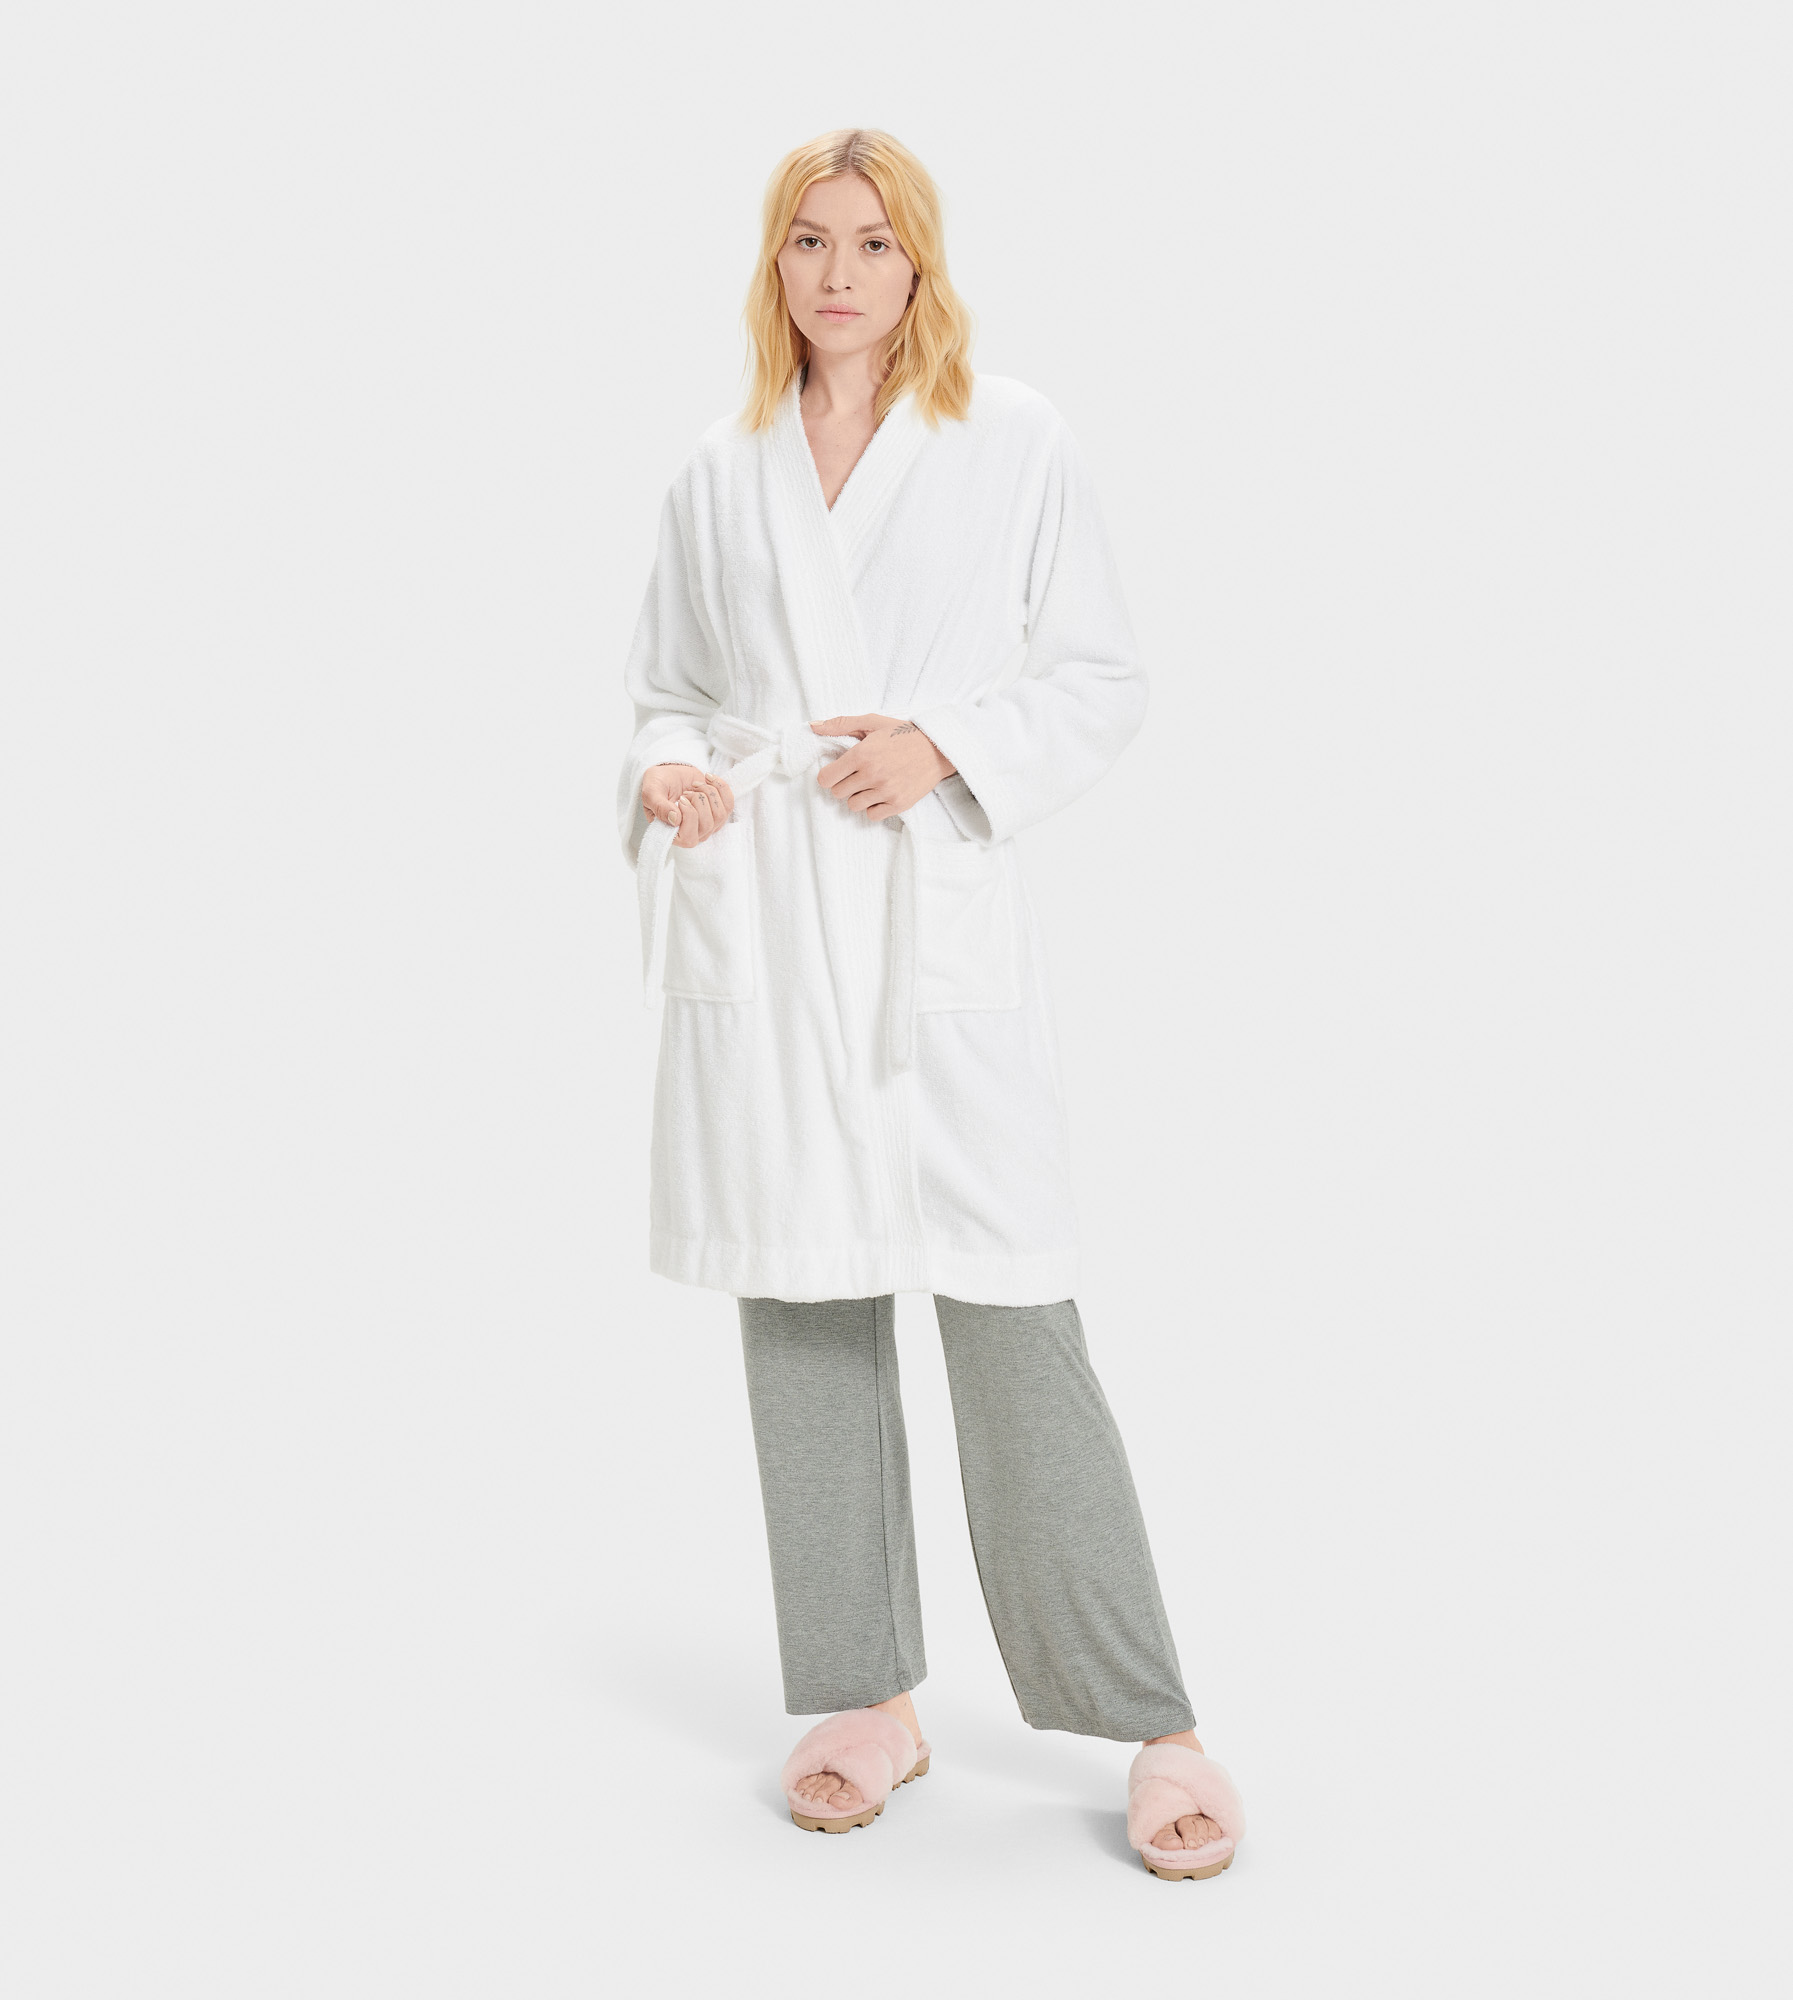 UGG Women's Lorie Terry Robe Cotton Blend Sleepwear in White, Size M/L Made from a soft cotton terry knit, this cozy robe is perfect for relaxed weekend mornings. Best paired with fluffy slippers and an espresso. Double loop terry: 100% Cotton. Self-tie. Patch pockets. 39  center back length. UGG Women's Lorie Terry Robe Cotton Blend Sleepwear in White, Size M/L